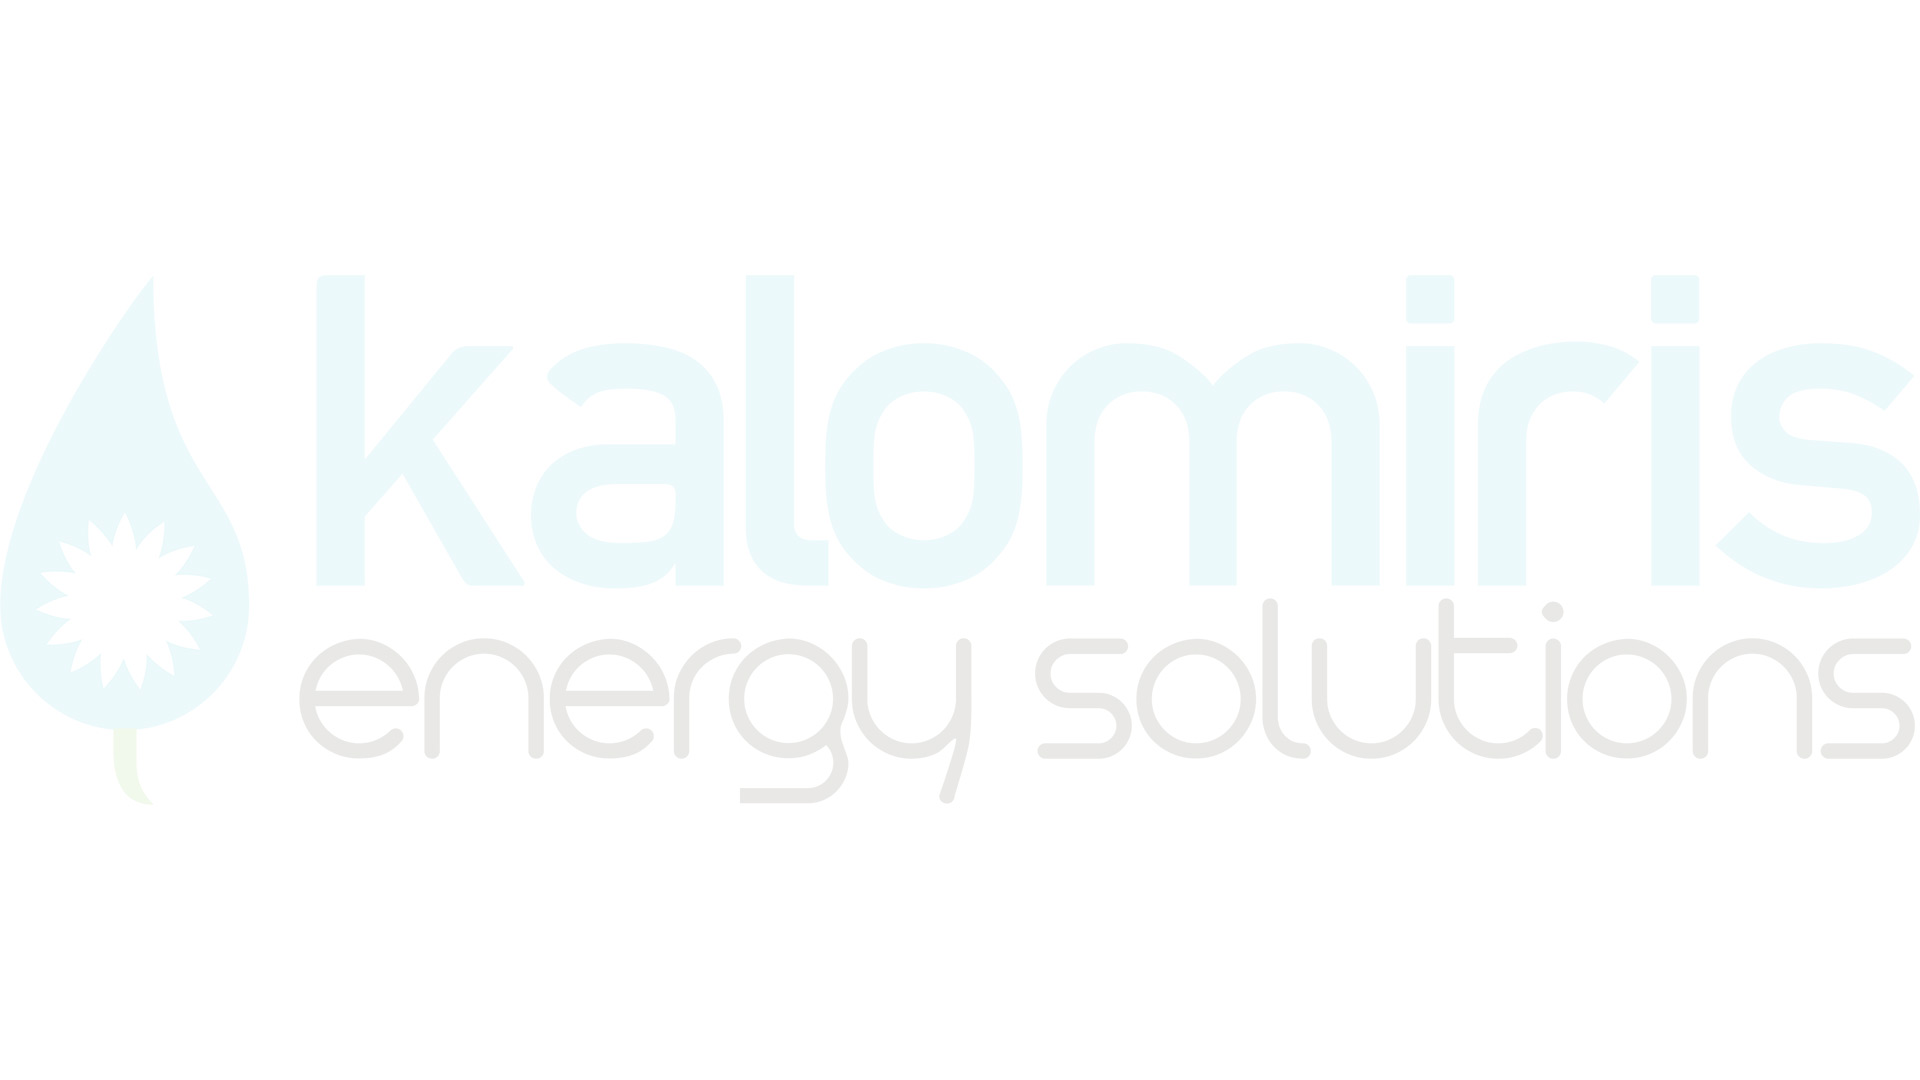 Ceiling Fan CASAFAN Eco Gamma 103 WE-LG White / Light Gray 40.5 (103cm)